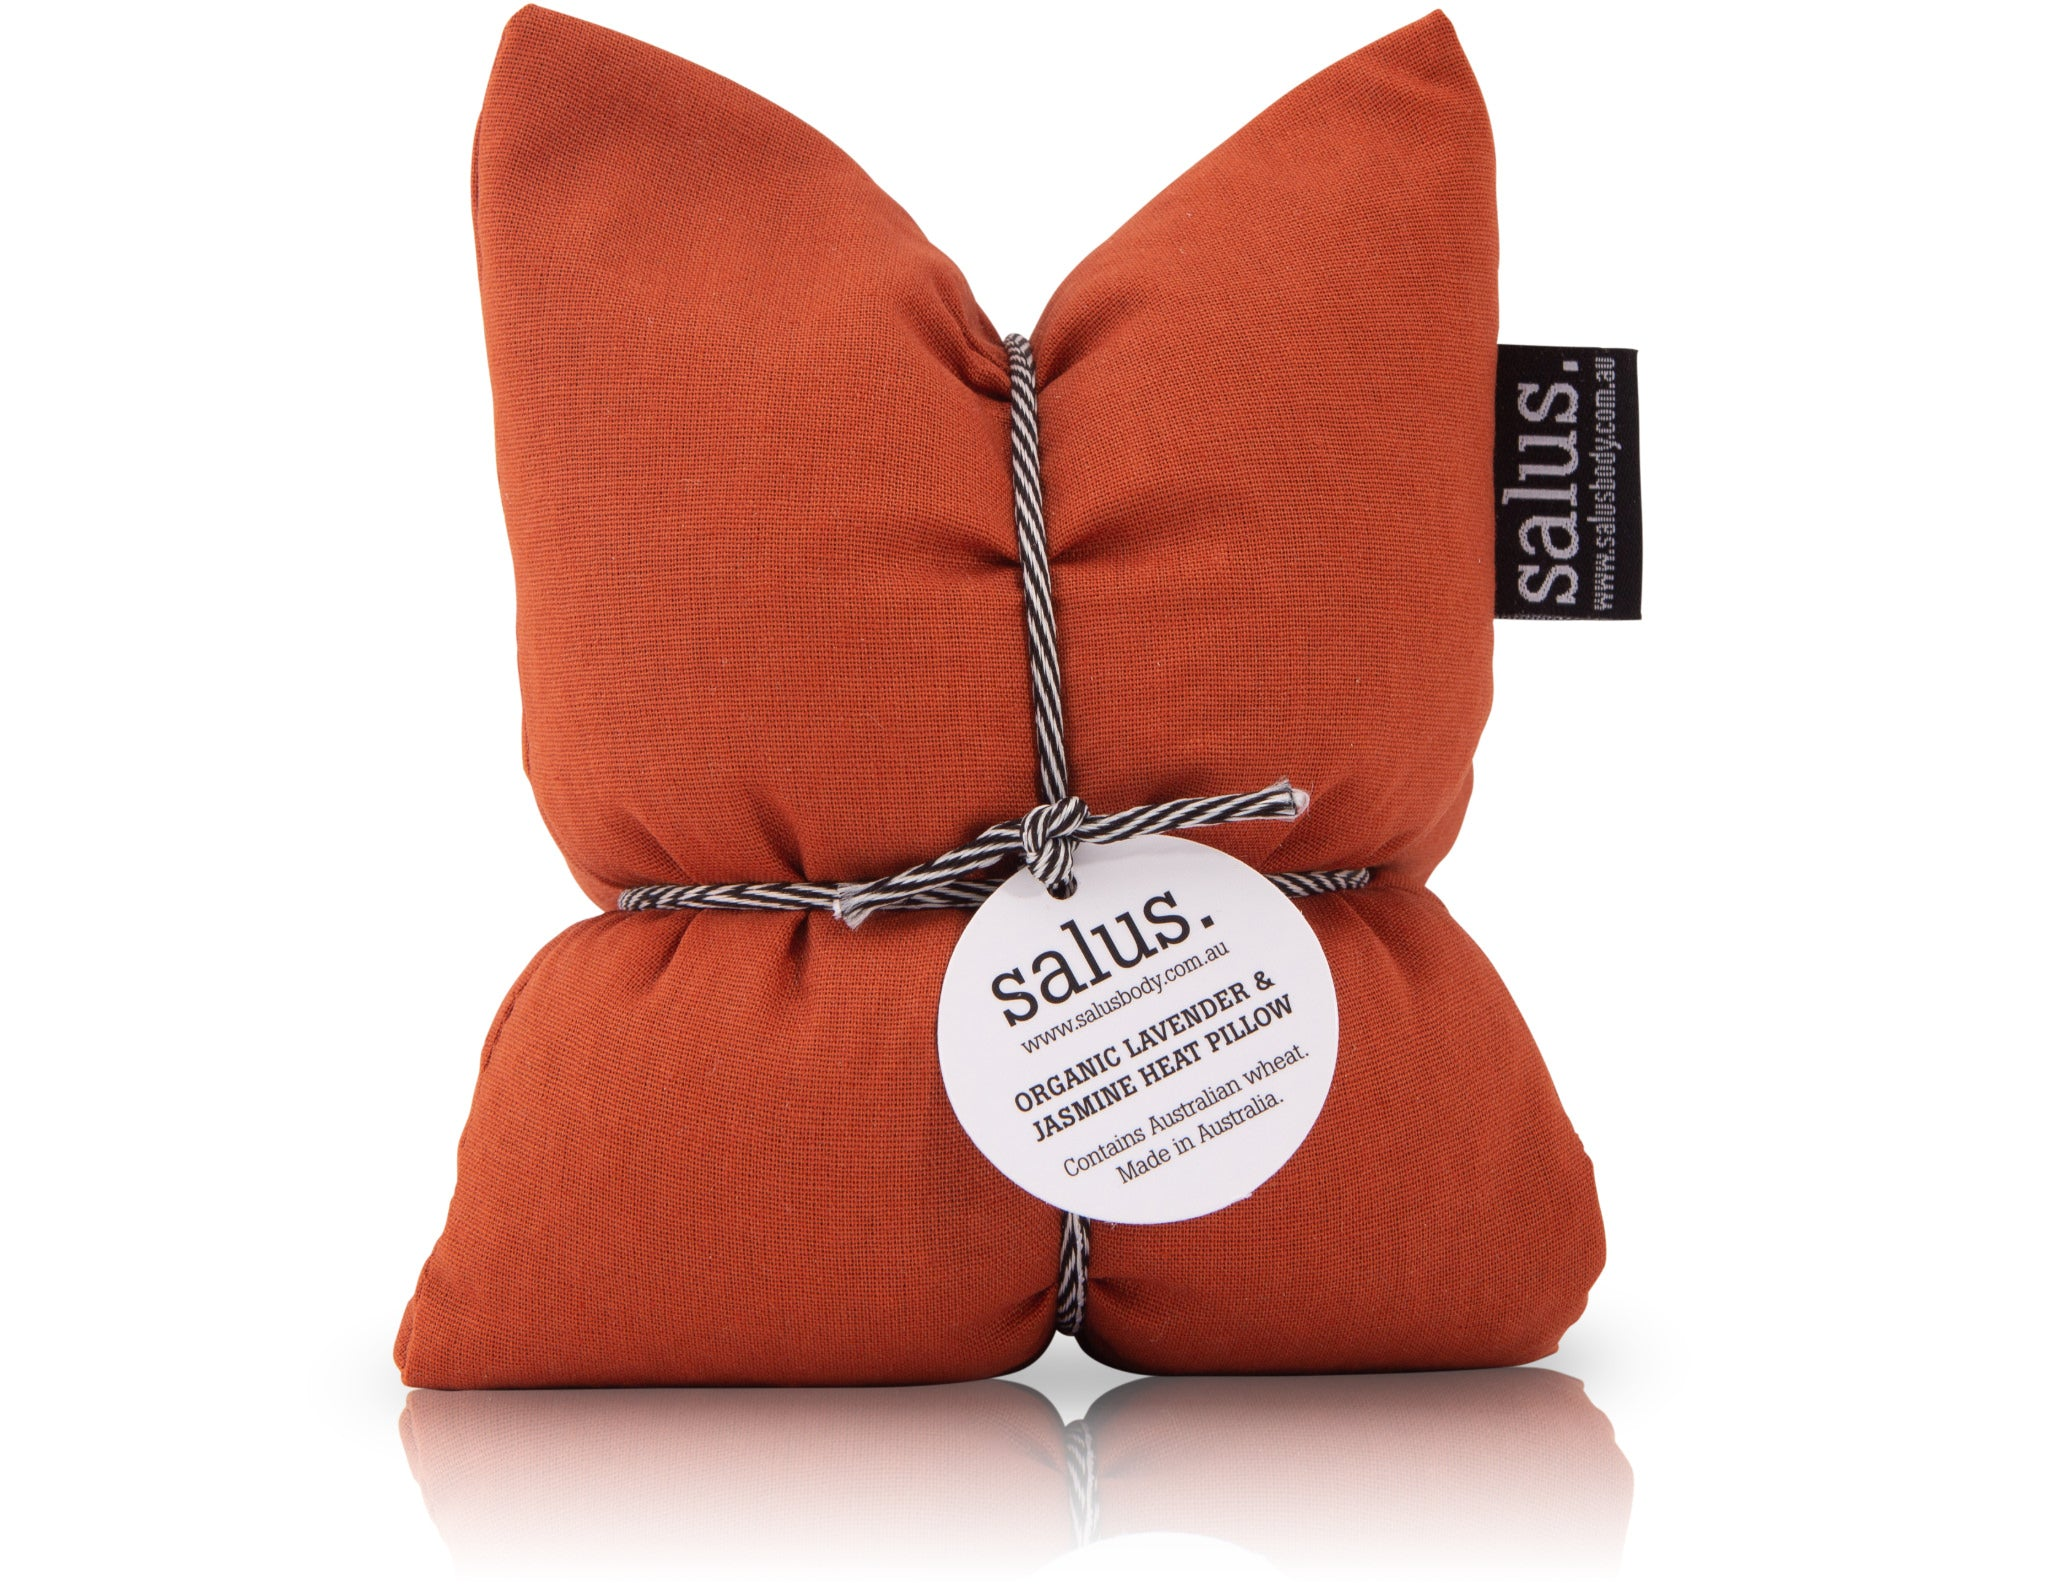 Terracotta Lavender & Jasmine Heat Pillow